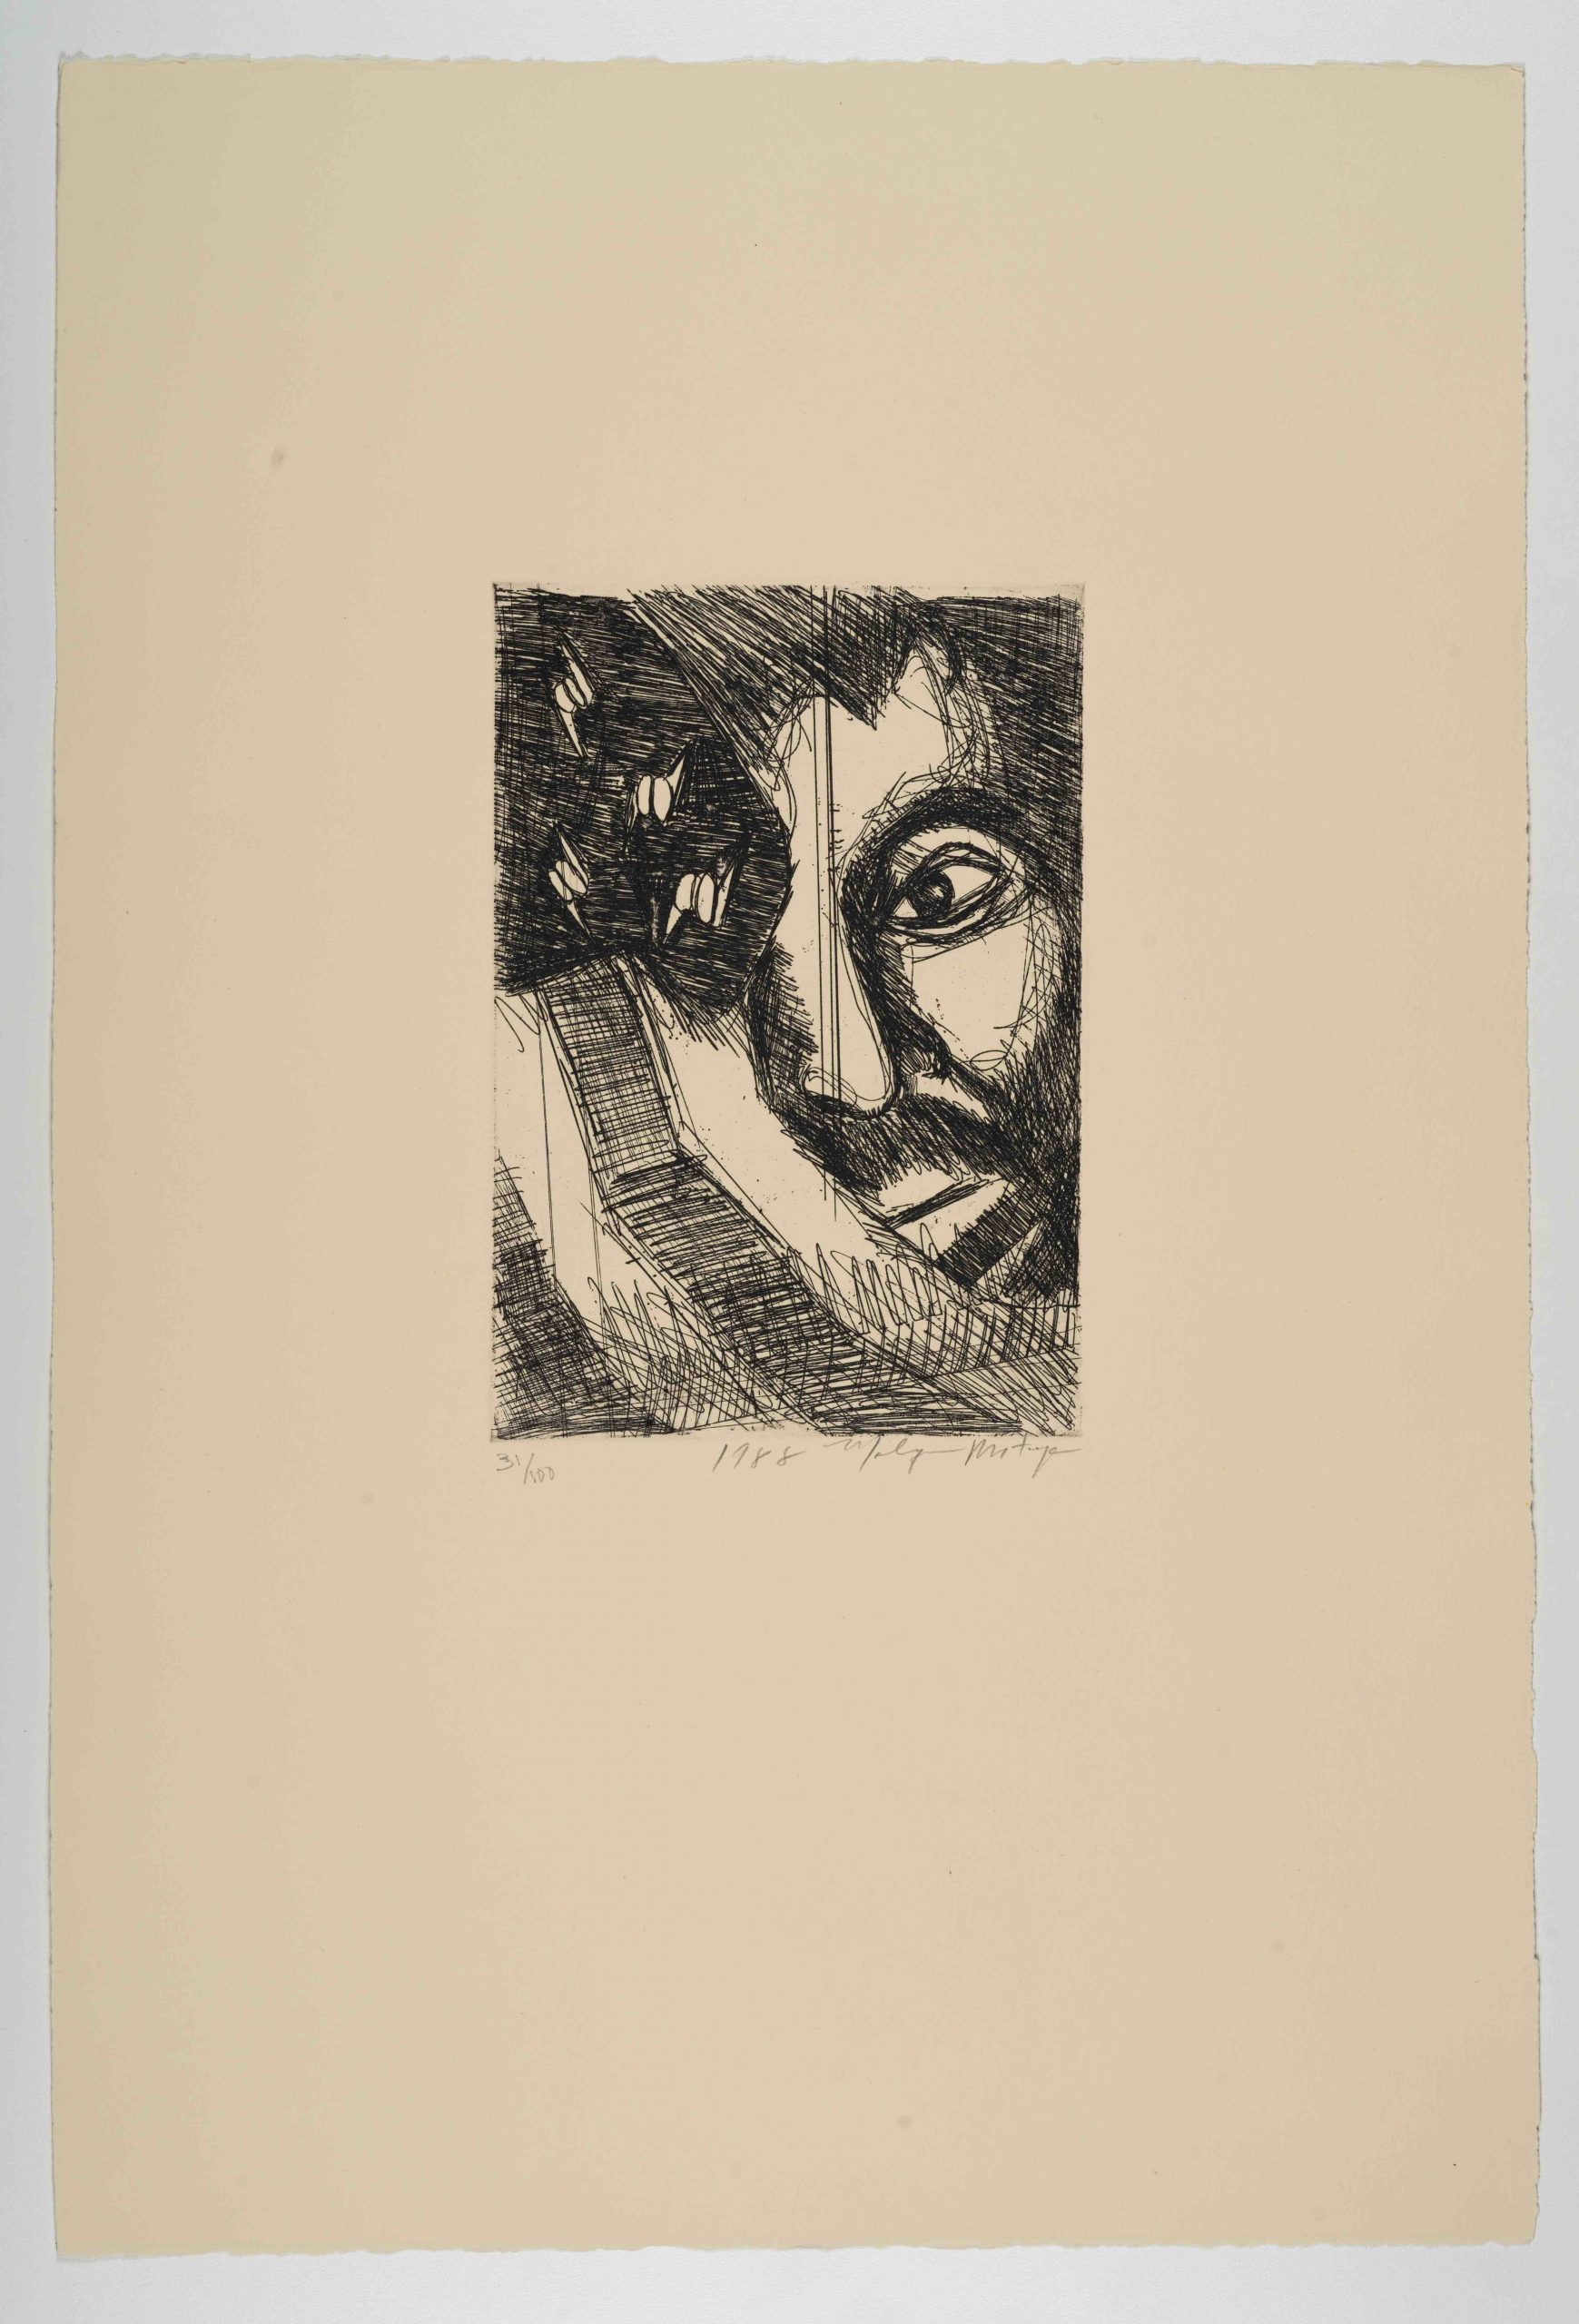 Malaquías Montoya, Untitled [Sin título], from The New Immigration series, 1988, etching, 22 x 14 7/8 in. (55.9 x 37.8 cm), Half of a face behind a modified version of the american flag where instead of stars there is barbed wire, Blanton Museum of Art, The University of Texas at Austin, Gift of Gilberto Cardenas, 2017